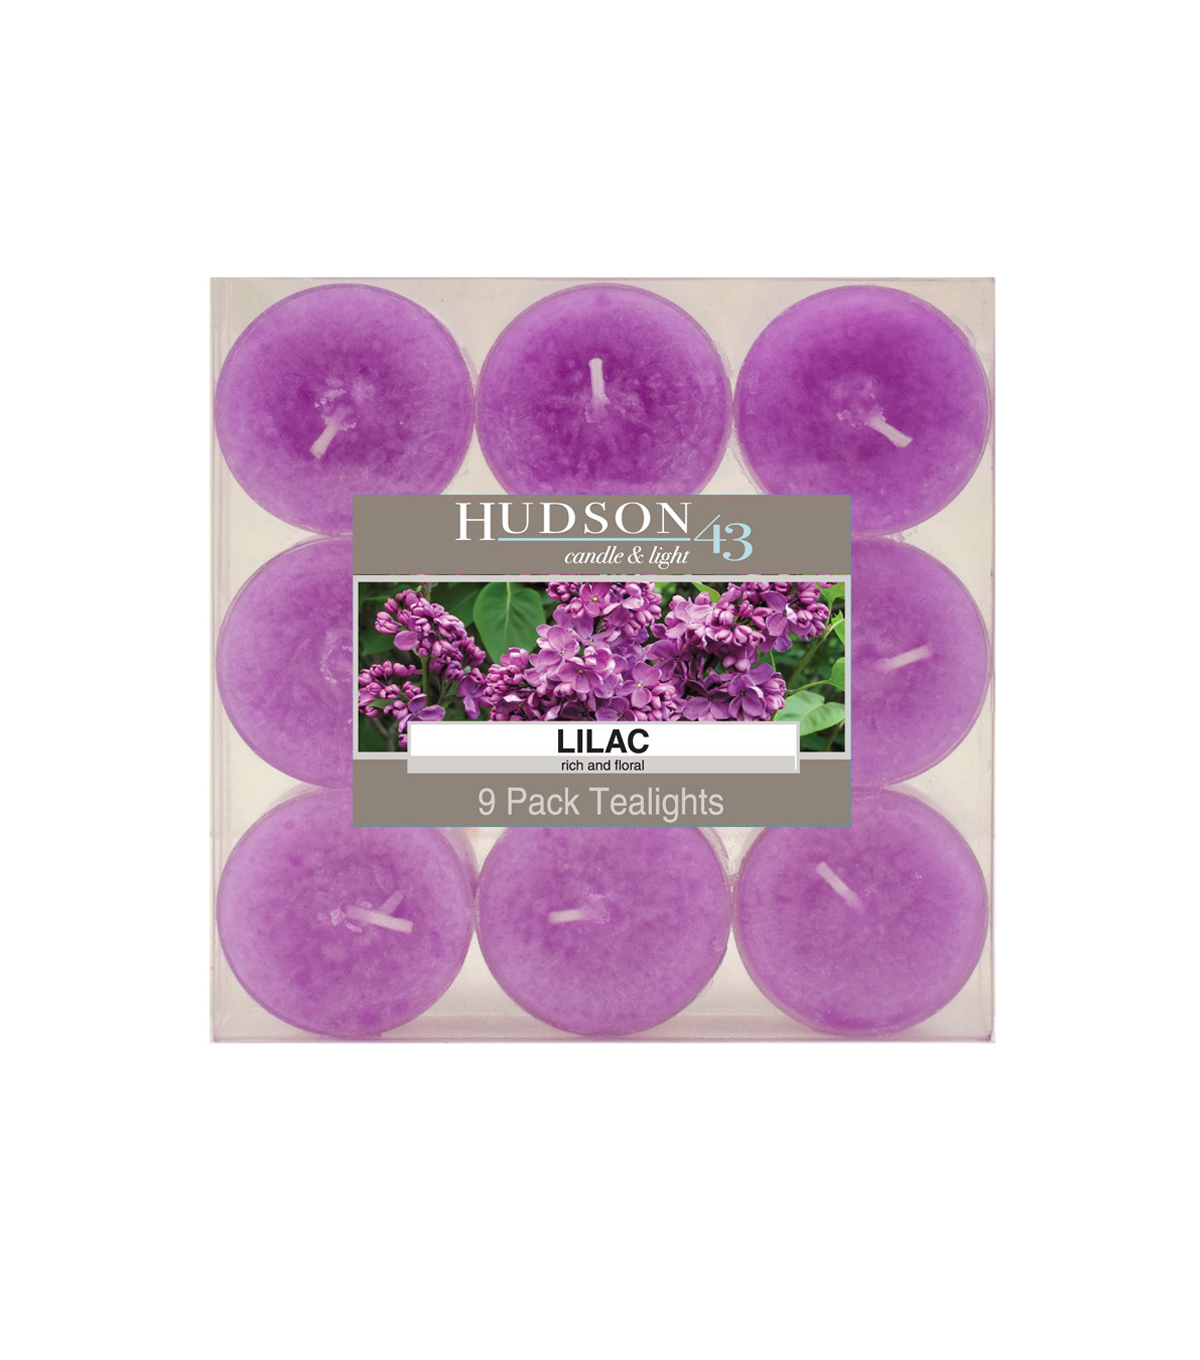 Hudson 43™ Candle & Light Collection 9 Pack Tealights Lilac